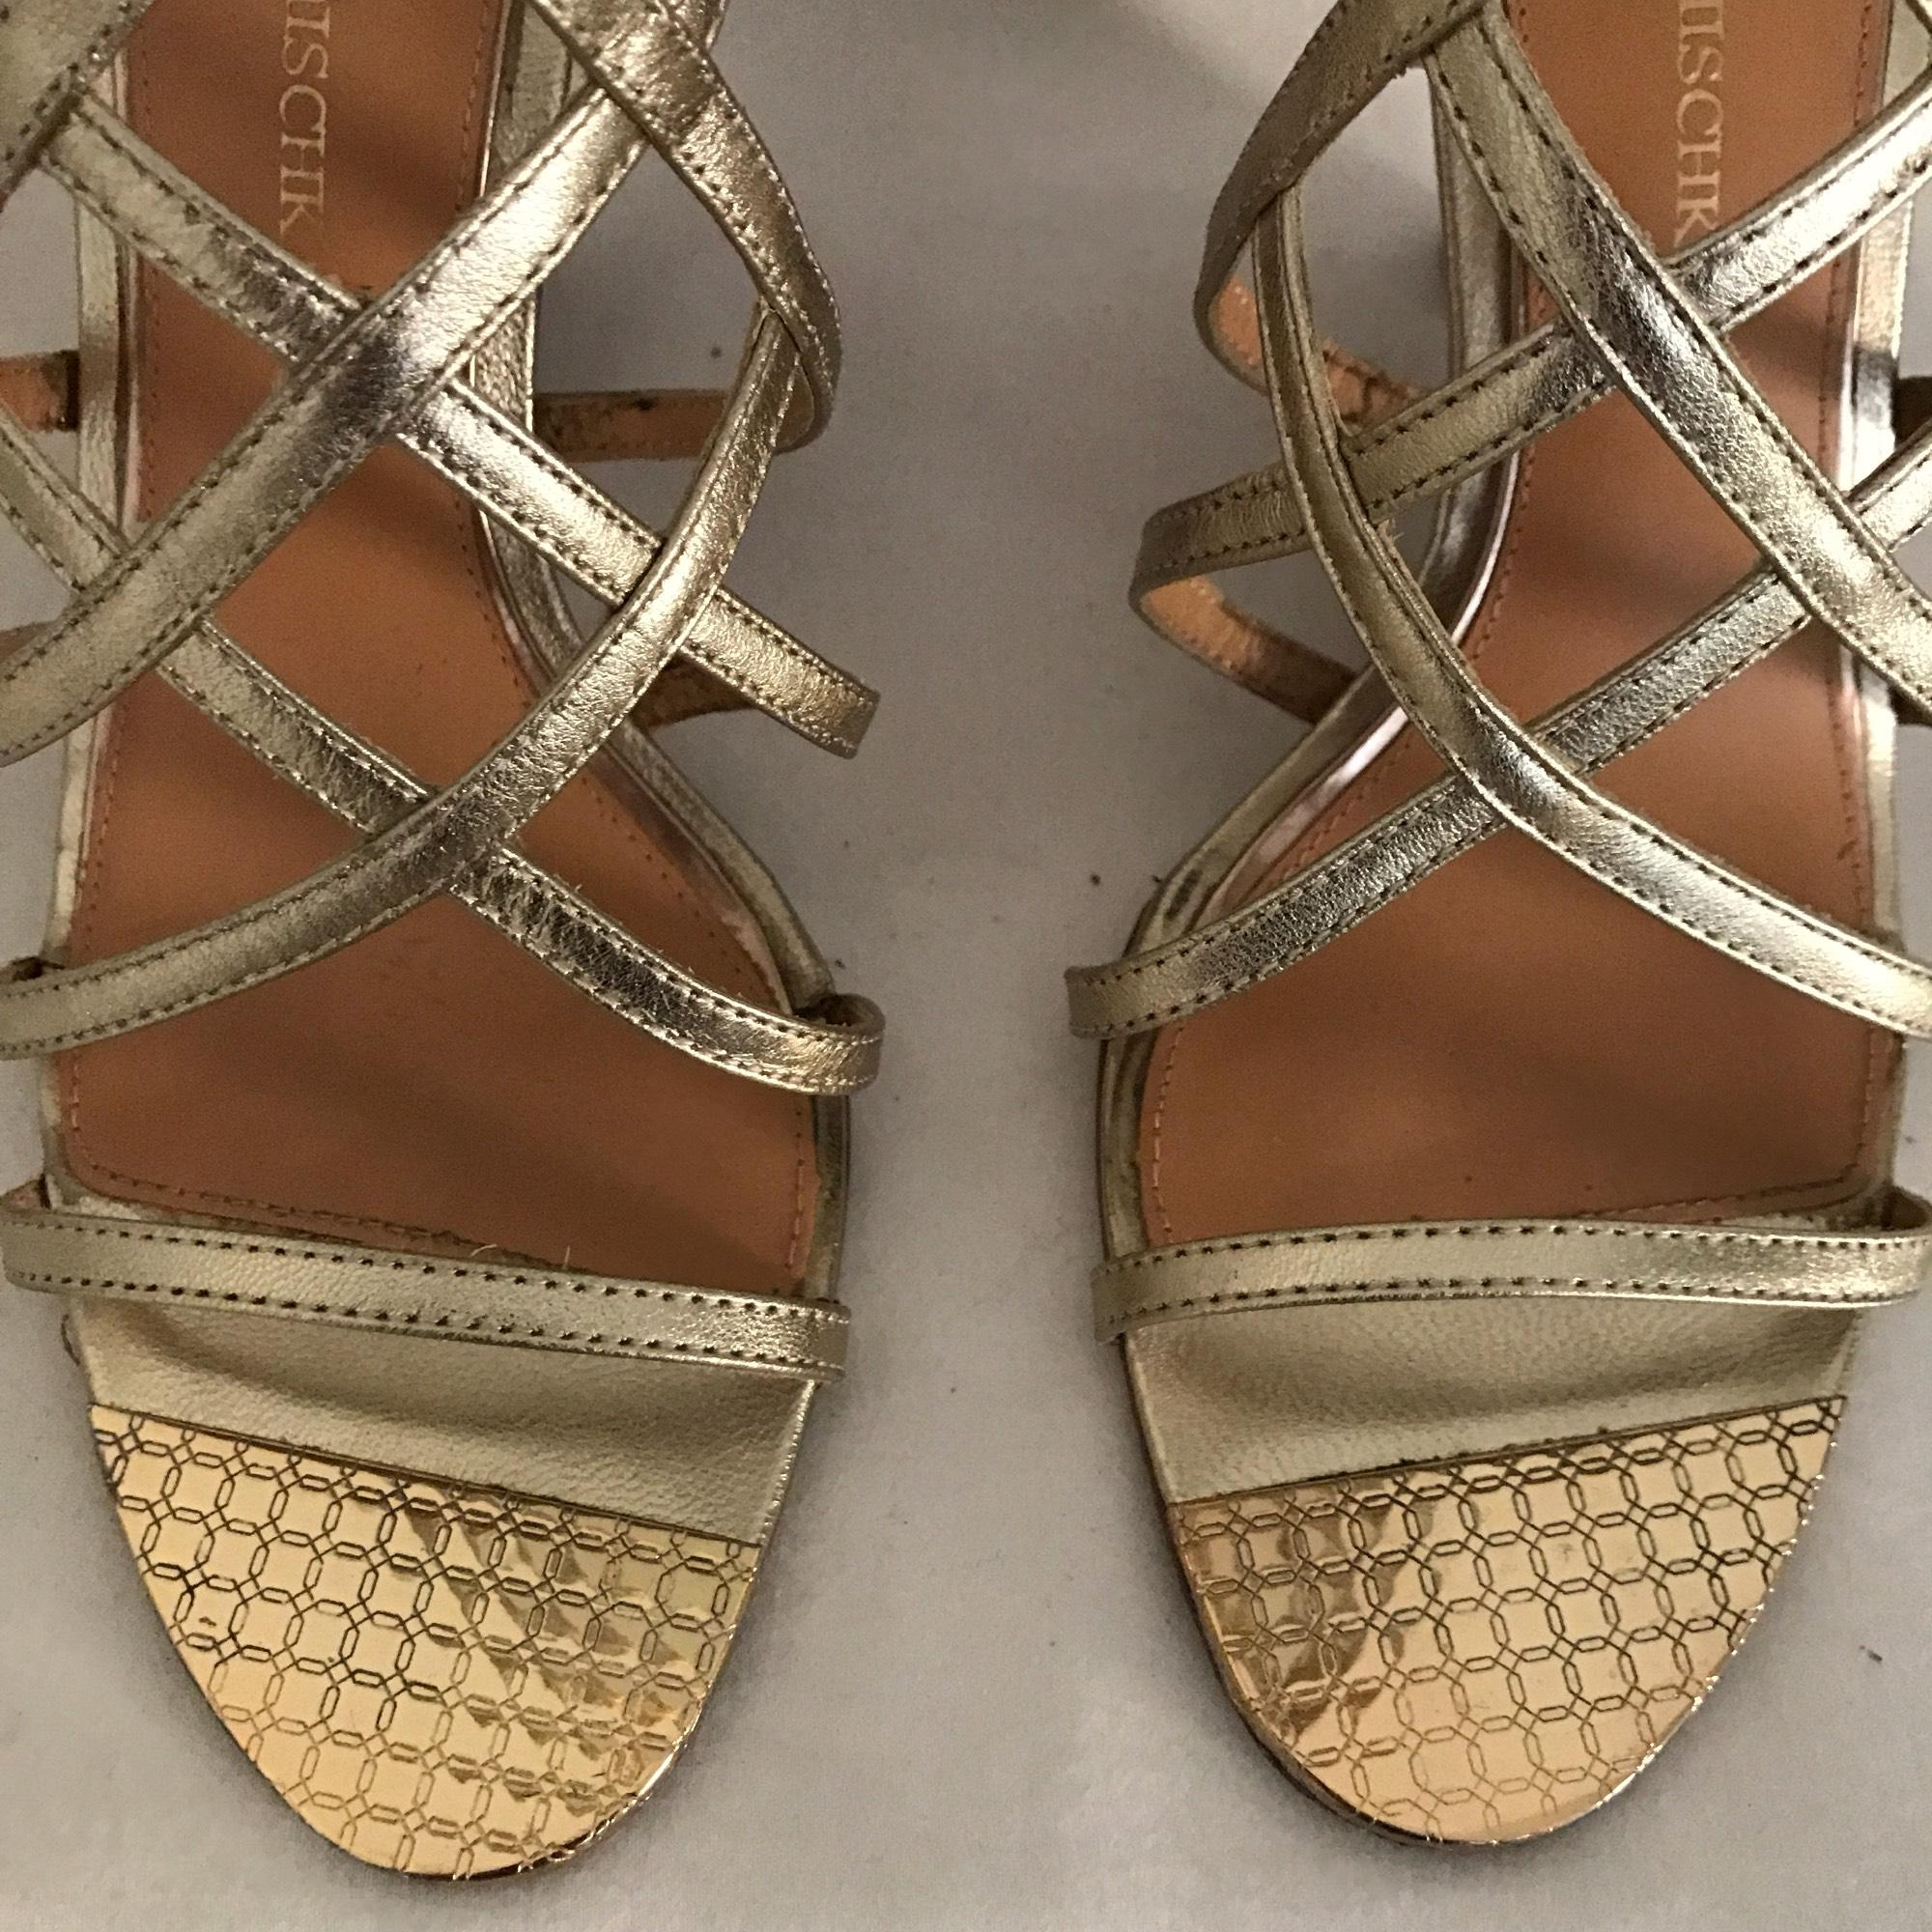 Badgley Mischka Leather Strappy Gold Wedges on Sale 80% f